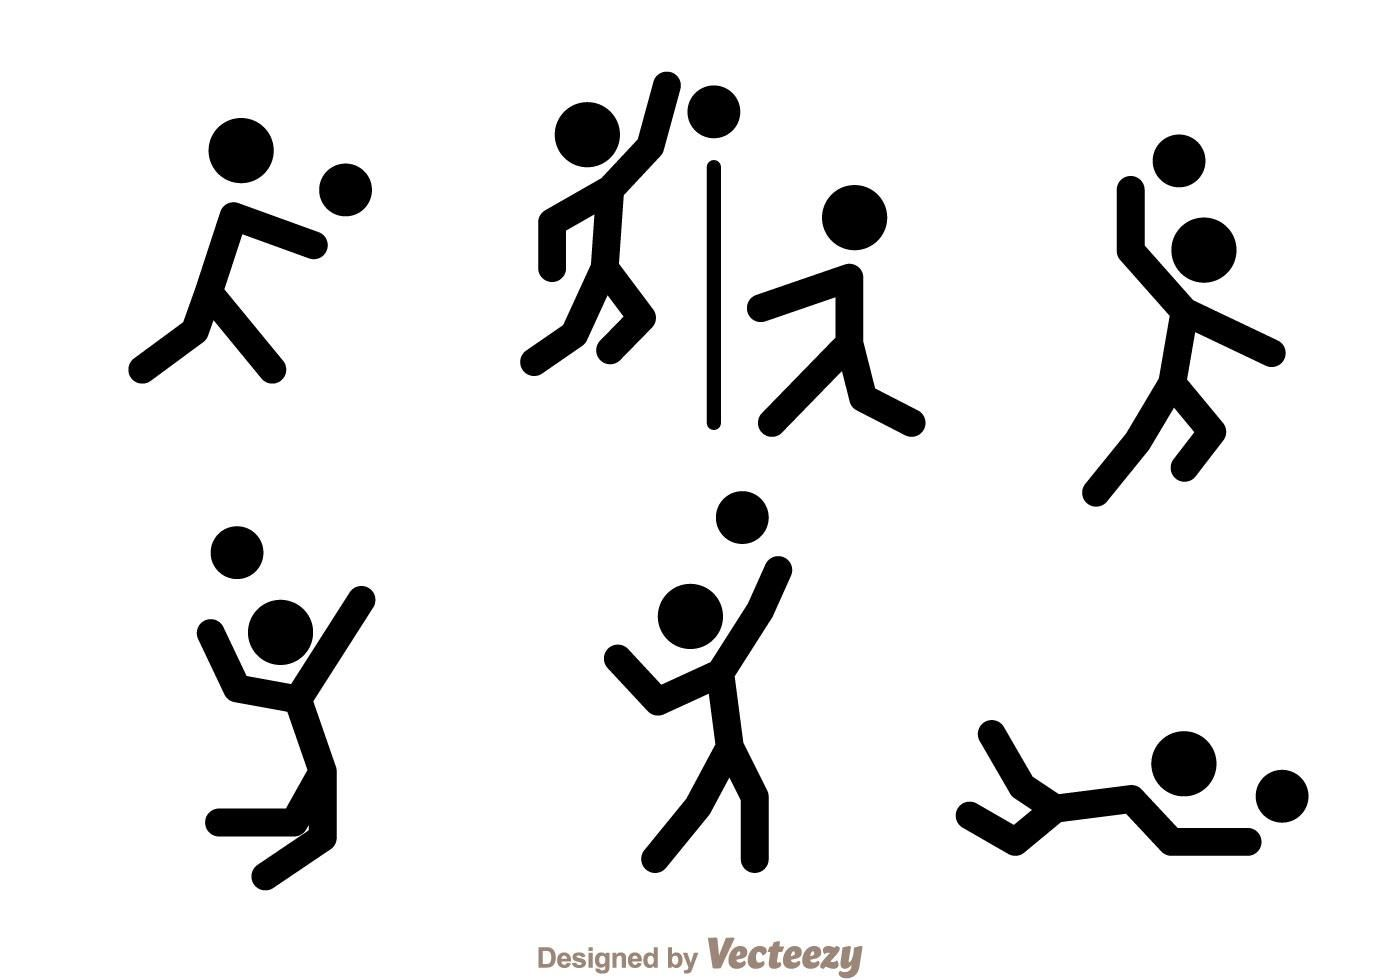 Volleyball Stick Figure Vector Icons Stick Figures Stick Figure Tattoo Vector Icons